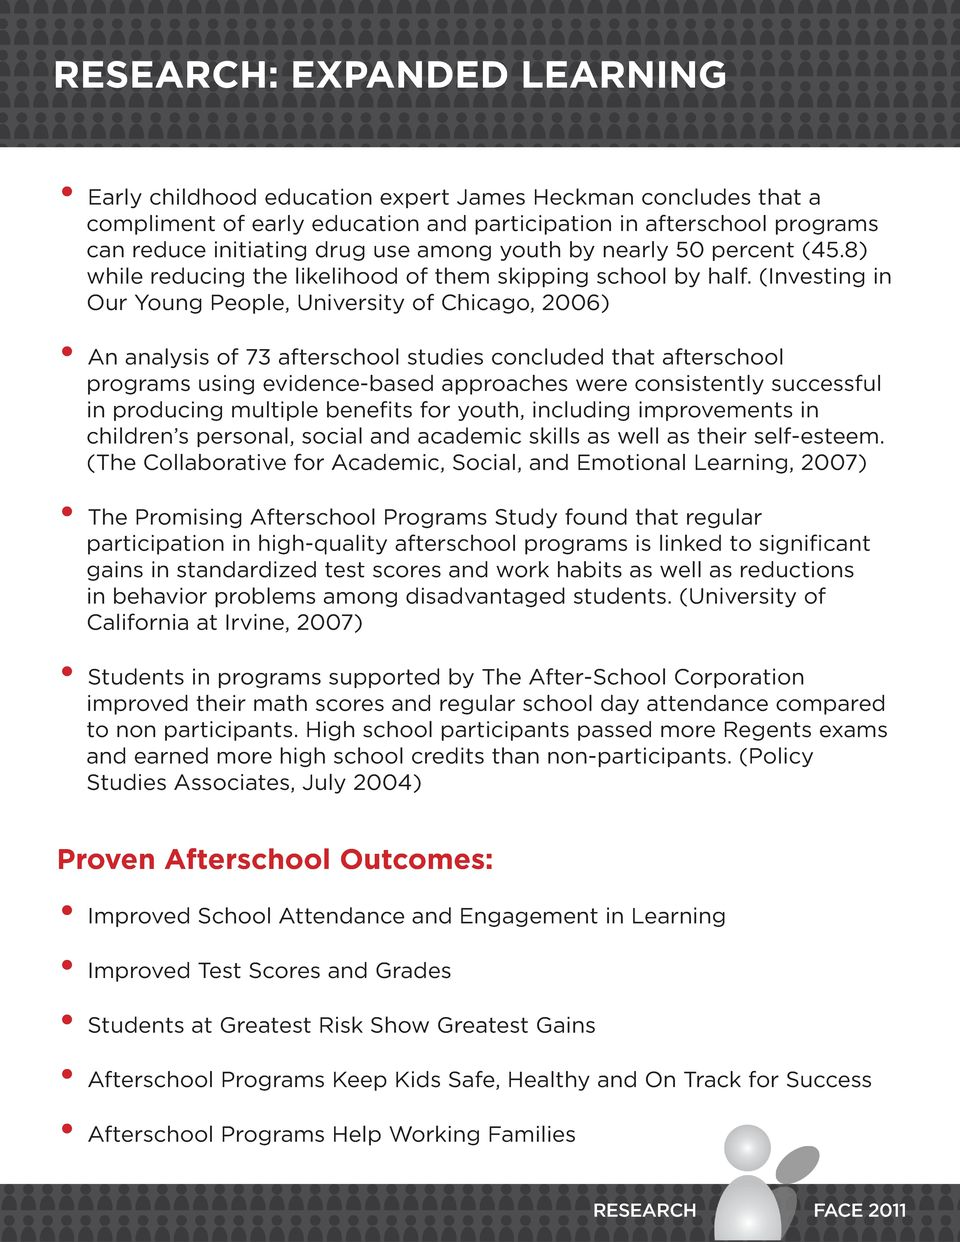 (Investing in Our Young People, University of Chicago, 2006) An analysis of 73 afterschool studies concluded that afterschool programs using evidence-based approaches were consistently successful in